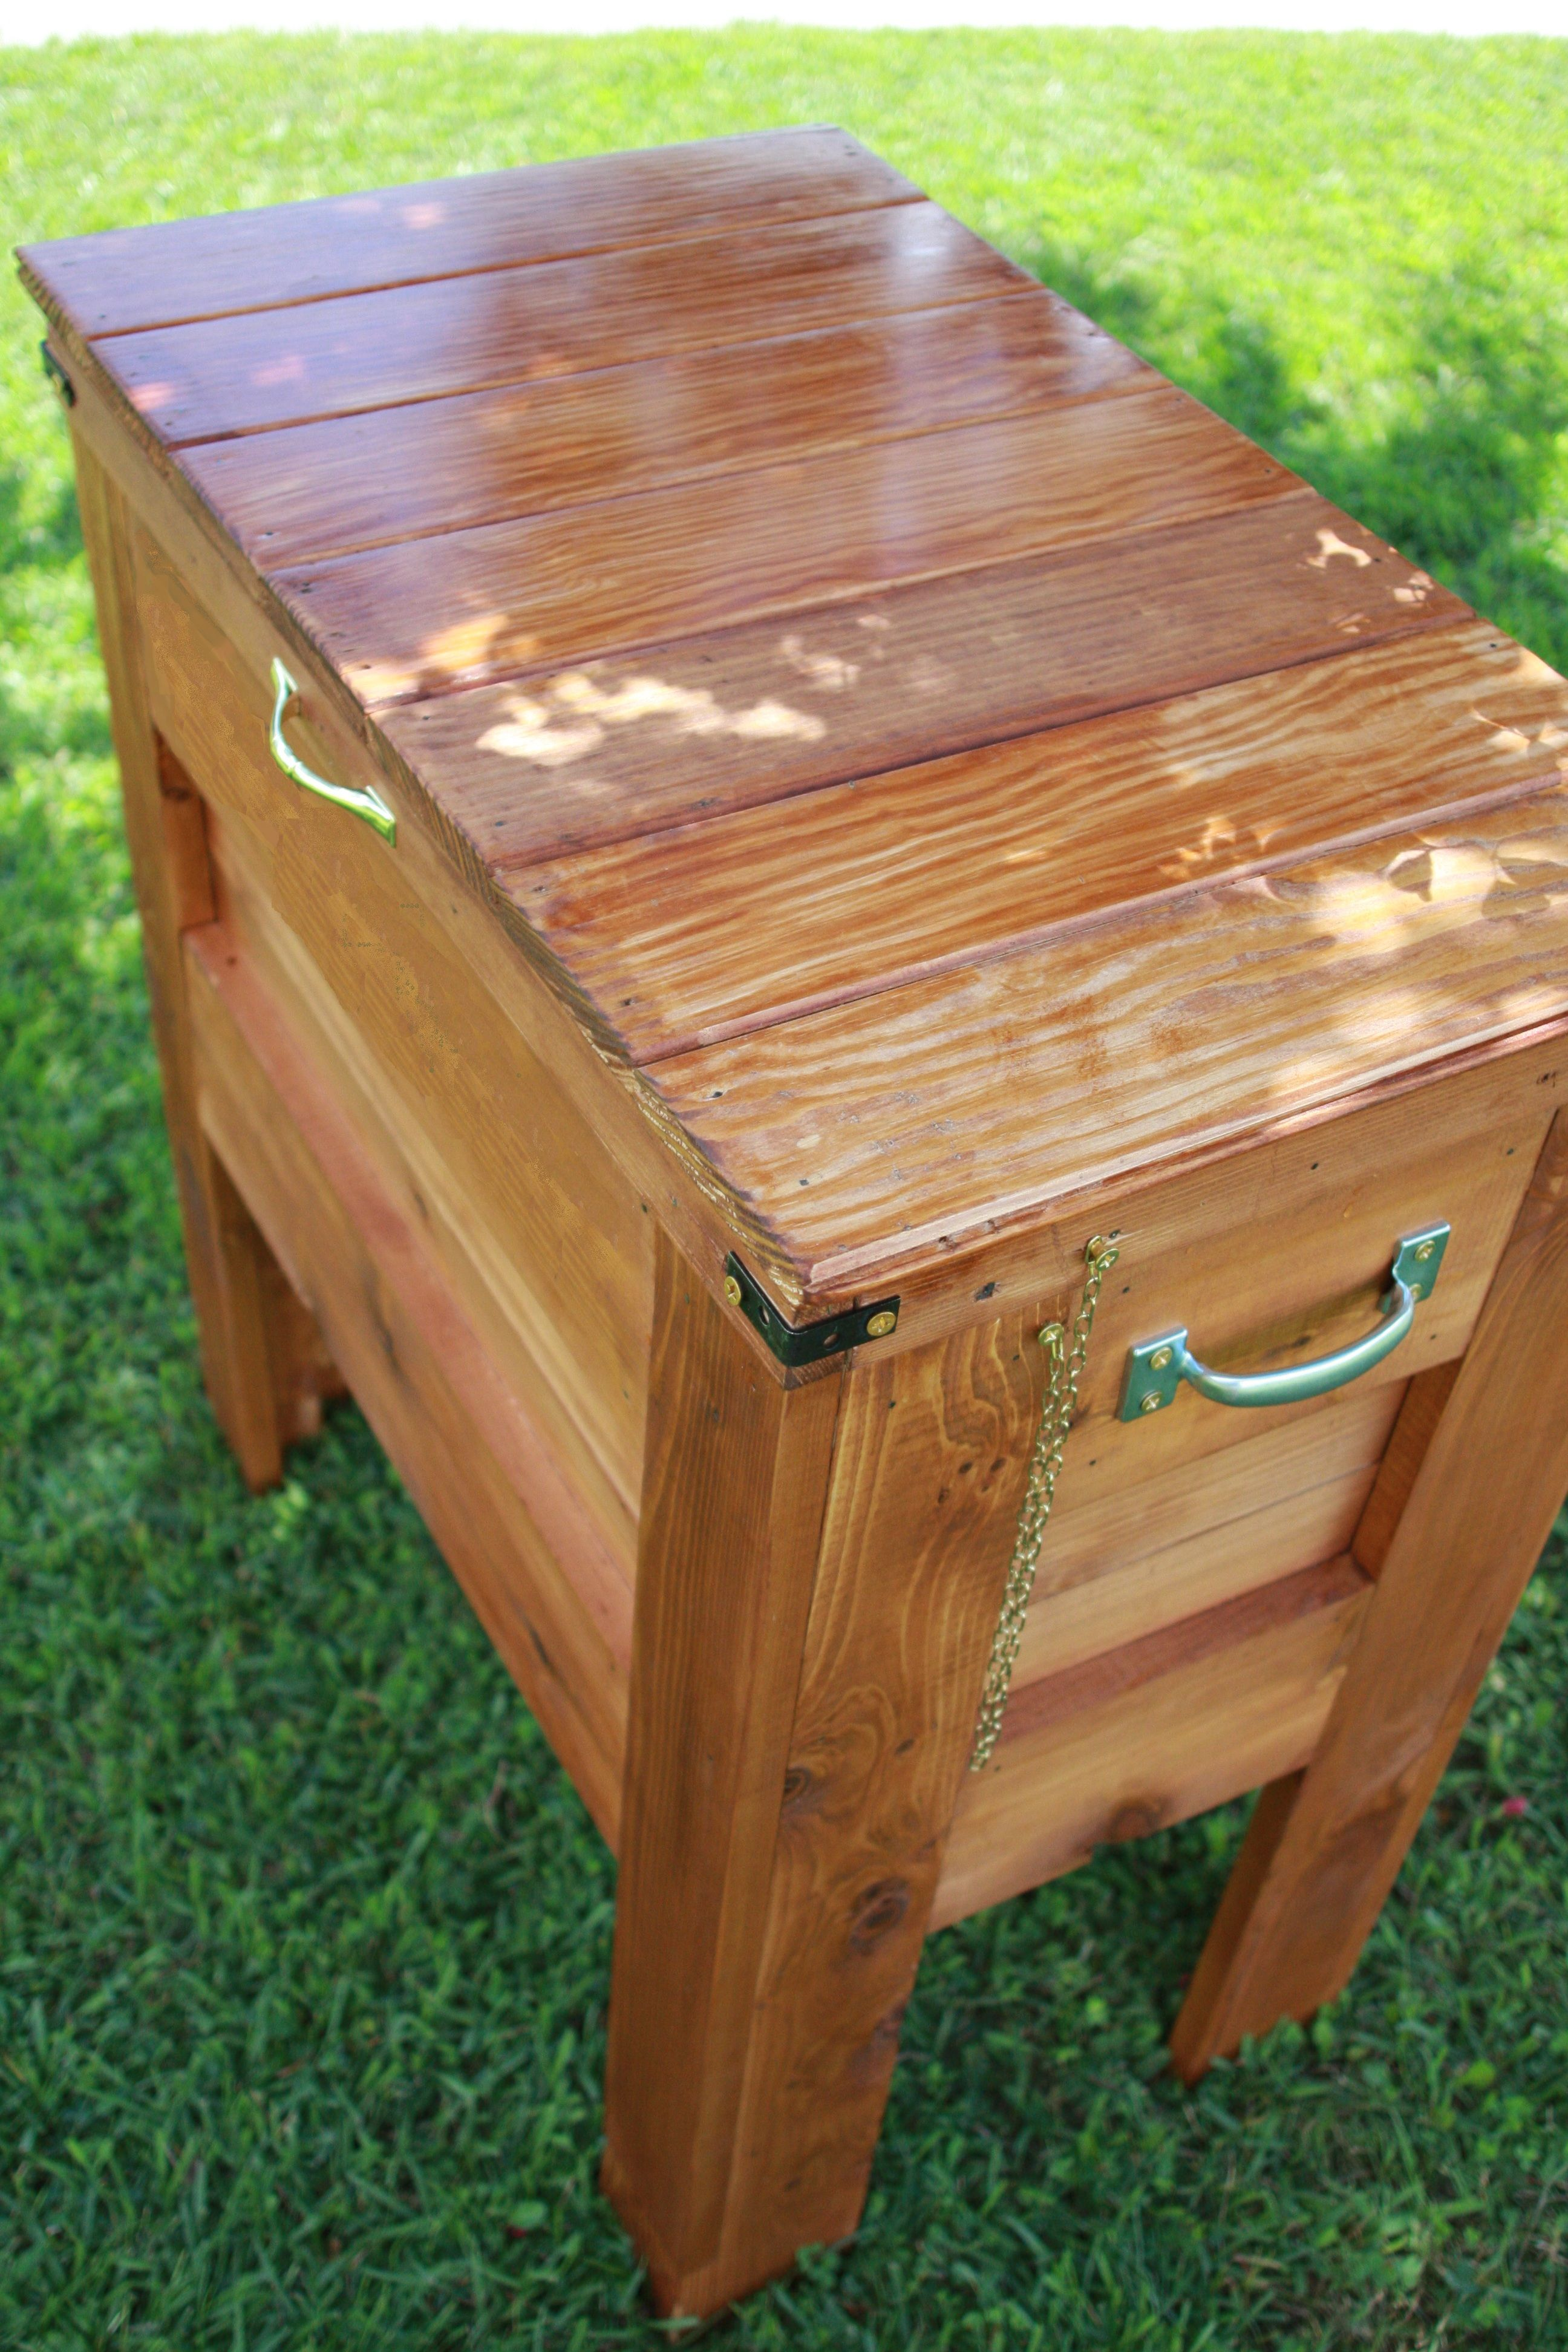 Outdoor Wooden Cooler Do It Yourself Home Projects From Ana White Kinda Love This For A Stationary Tack Wood Diy Diy Wood Projects